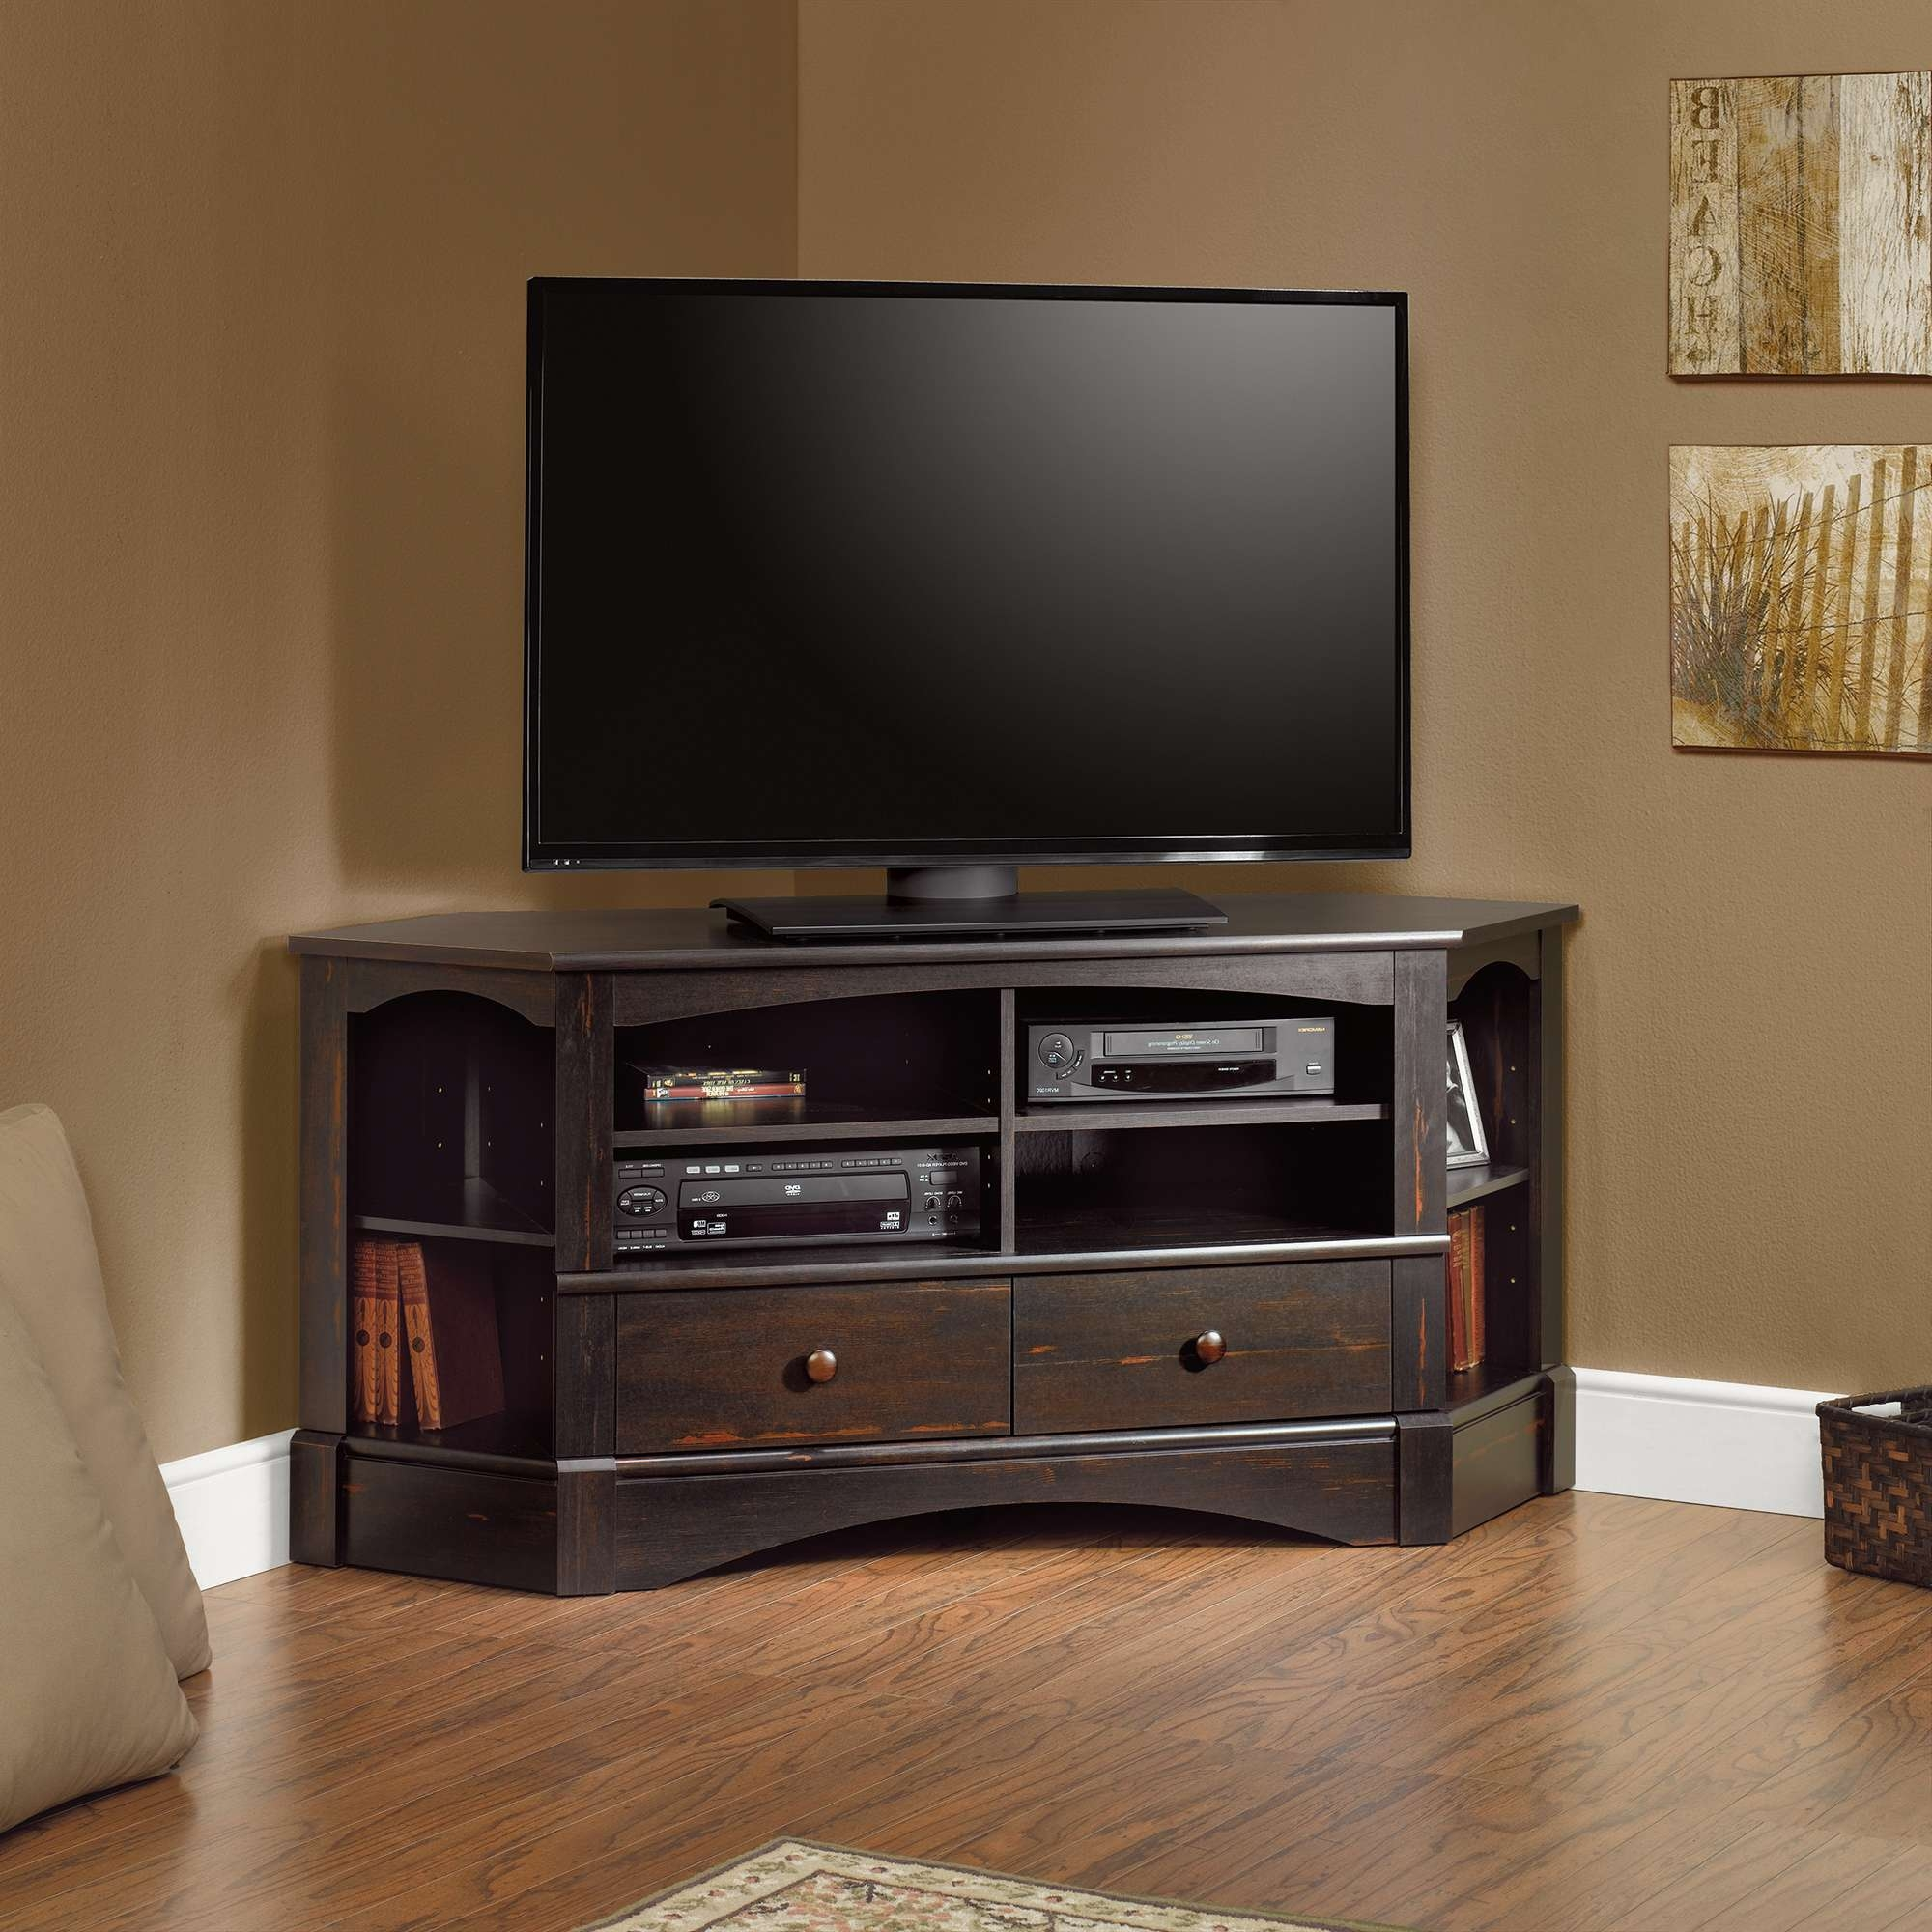 Harbor View | Corner Entertainment Credenza | 402902 | Sauder With Cornet Tv Stands (View 3 of 15)